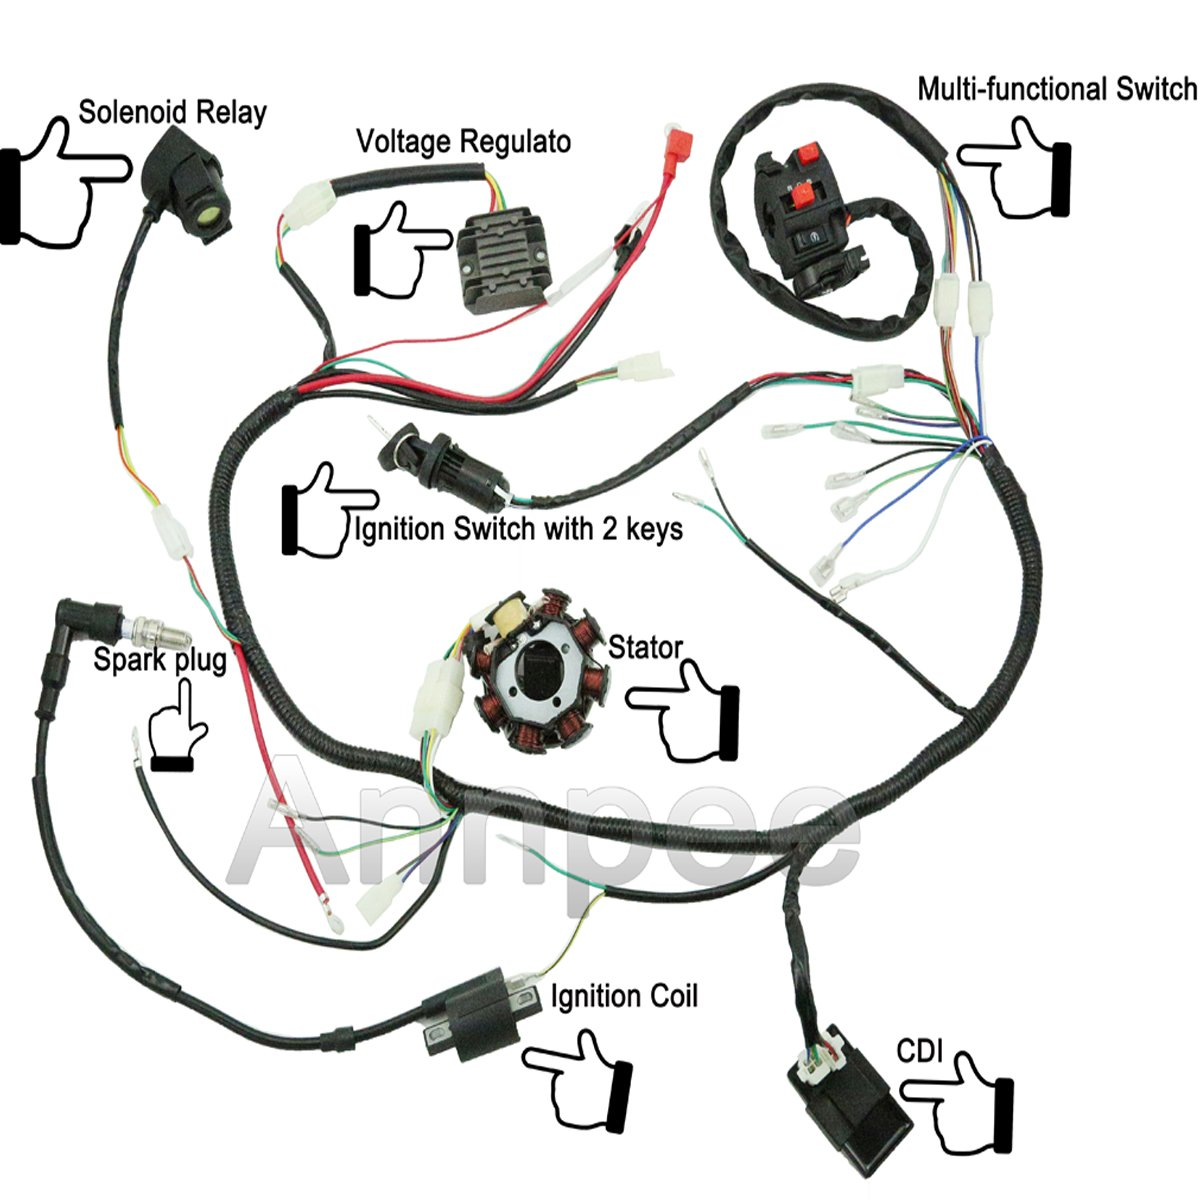 Hammerhead Twister 250cc Wiring Harness - Wiring Diagrams Show on